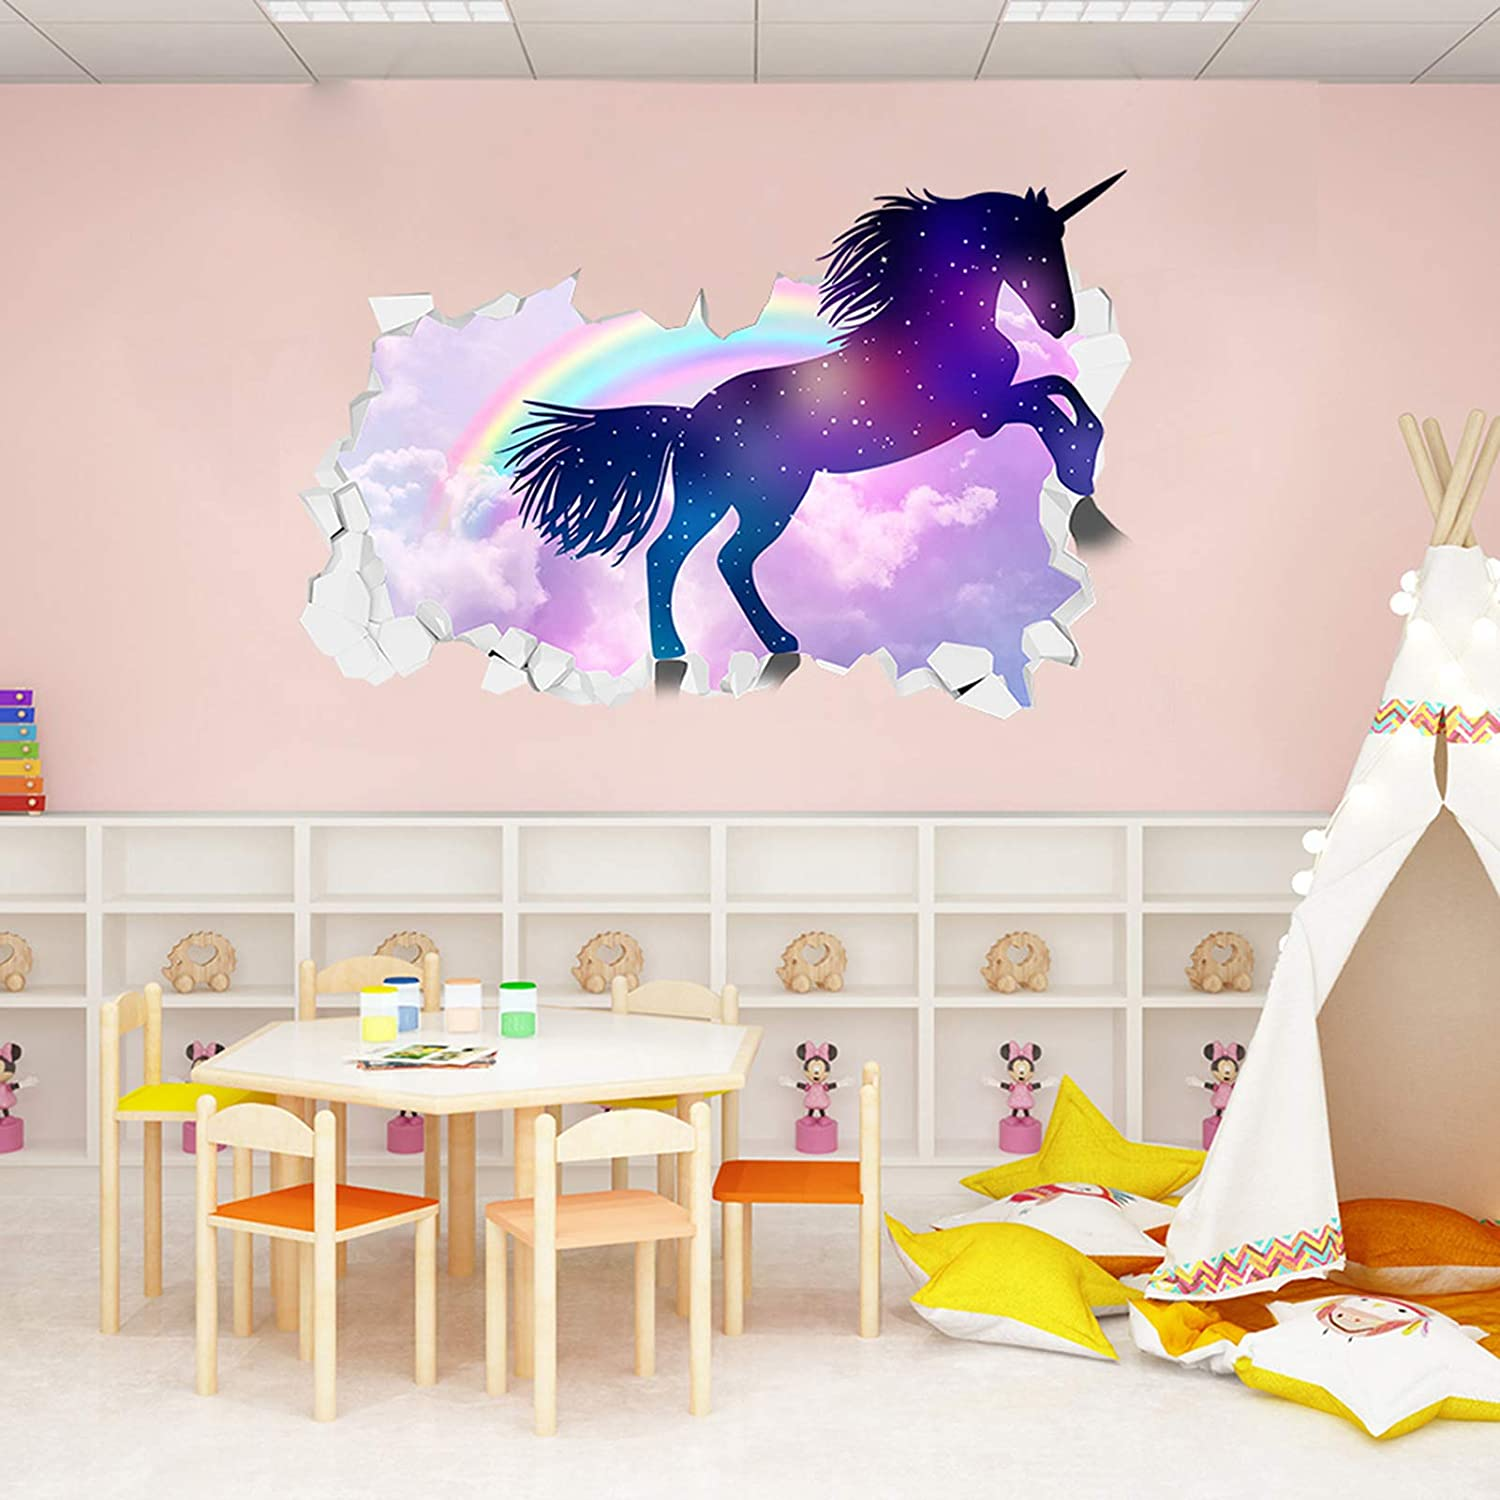 Rainbow Unicorn Wall Decal Stickers Personality Breaks The Wall Home Decor for Girls Kids Bedroom Nursery